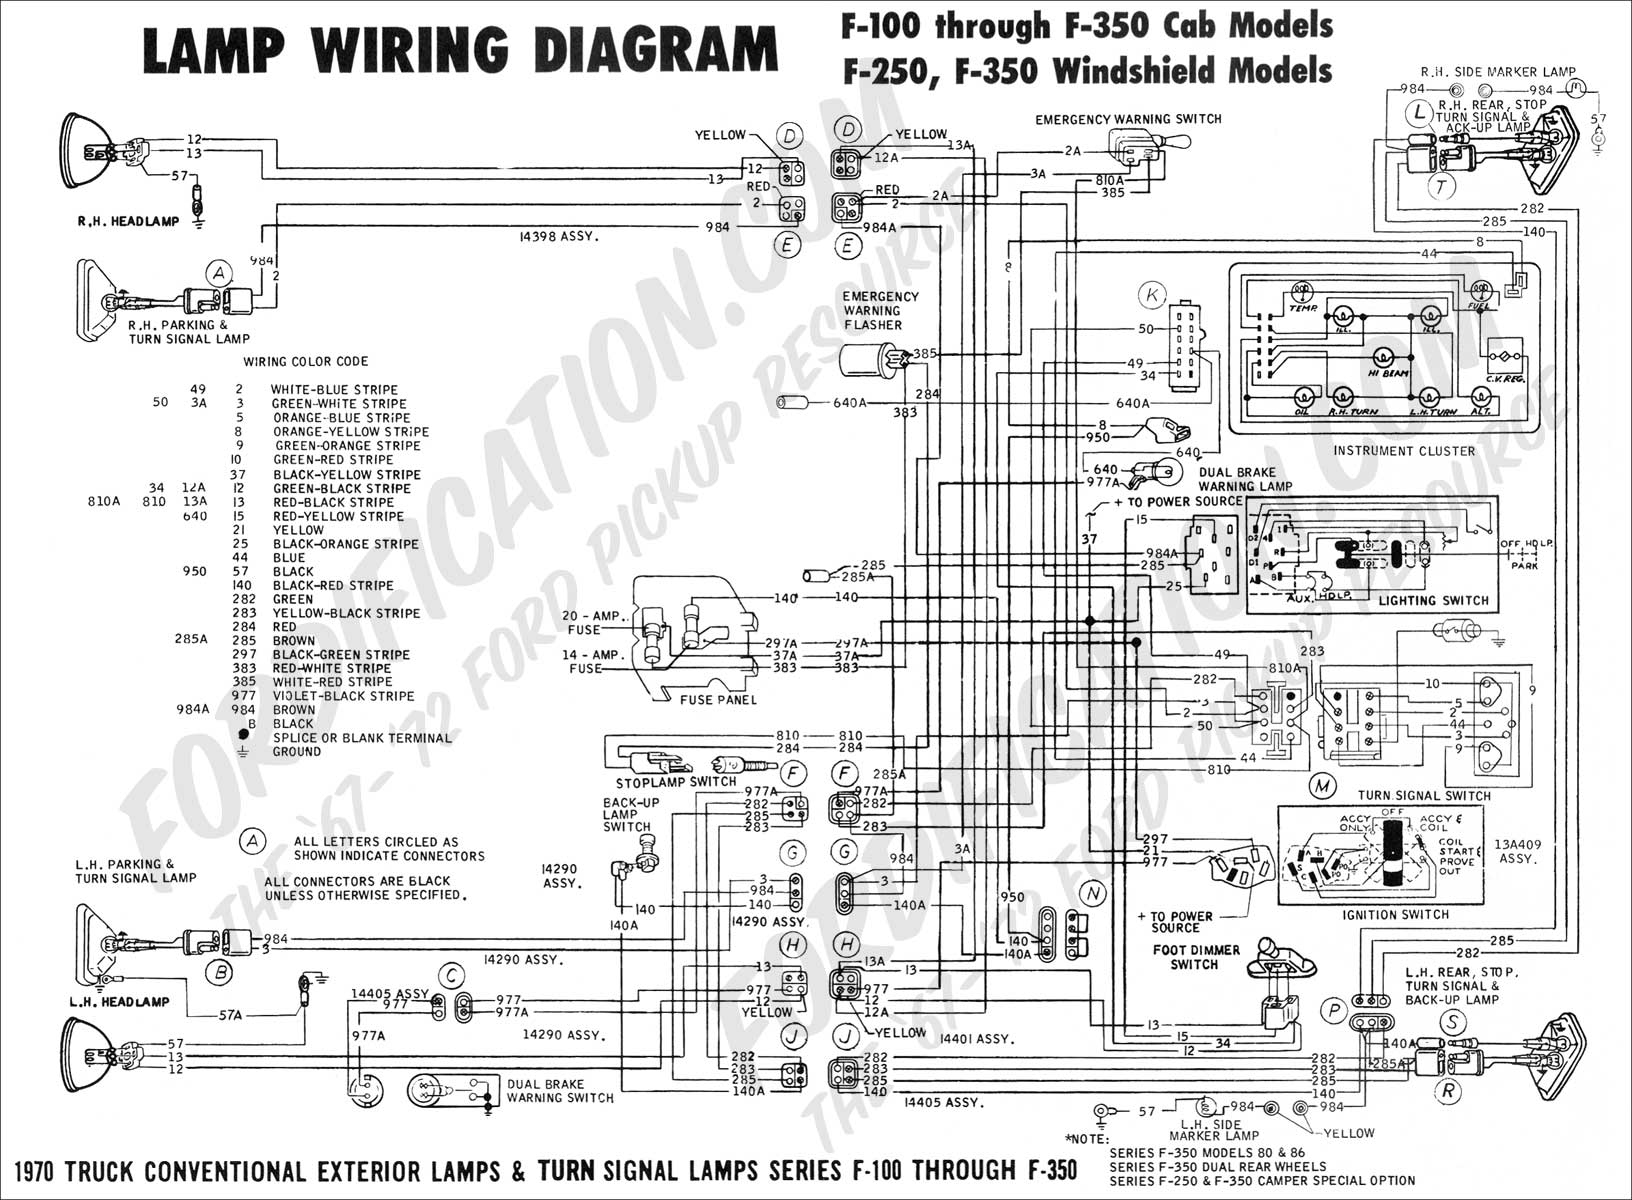 2001 F150 Ac Clutch Wiring Diagram furthermore 1975 Corvette Wiring Diagram Free also 1994 Ford E350 Wiring Diagram together with 1988 Mercedes 300e L6 3 0l Serpentine Belt Diagram besides 1993 Ford Ranger Wiring Diagram. on 1994 ford explorer fuse box diagram